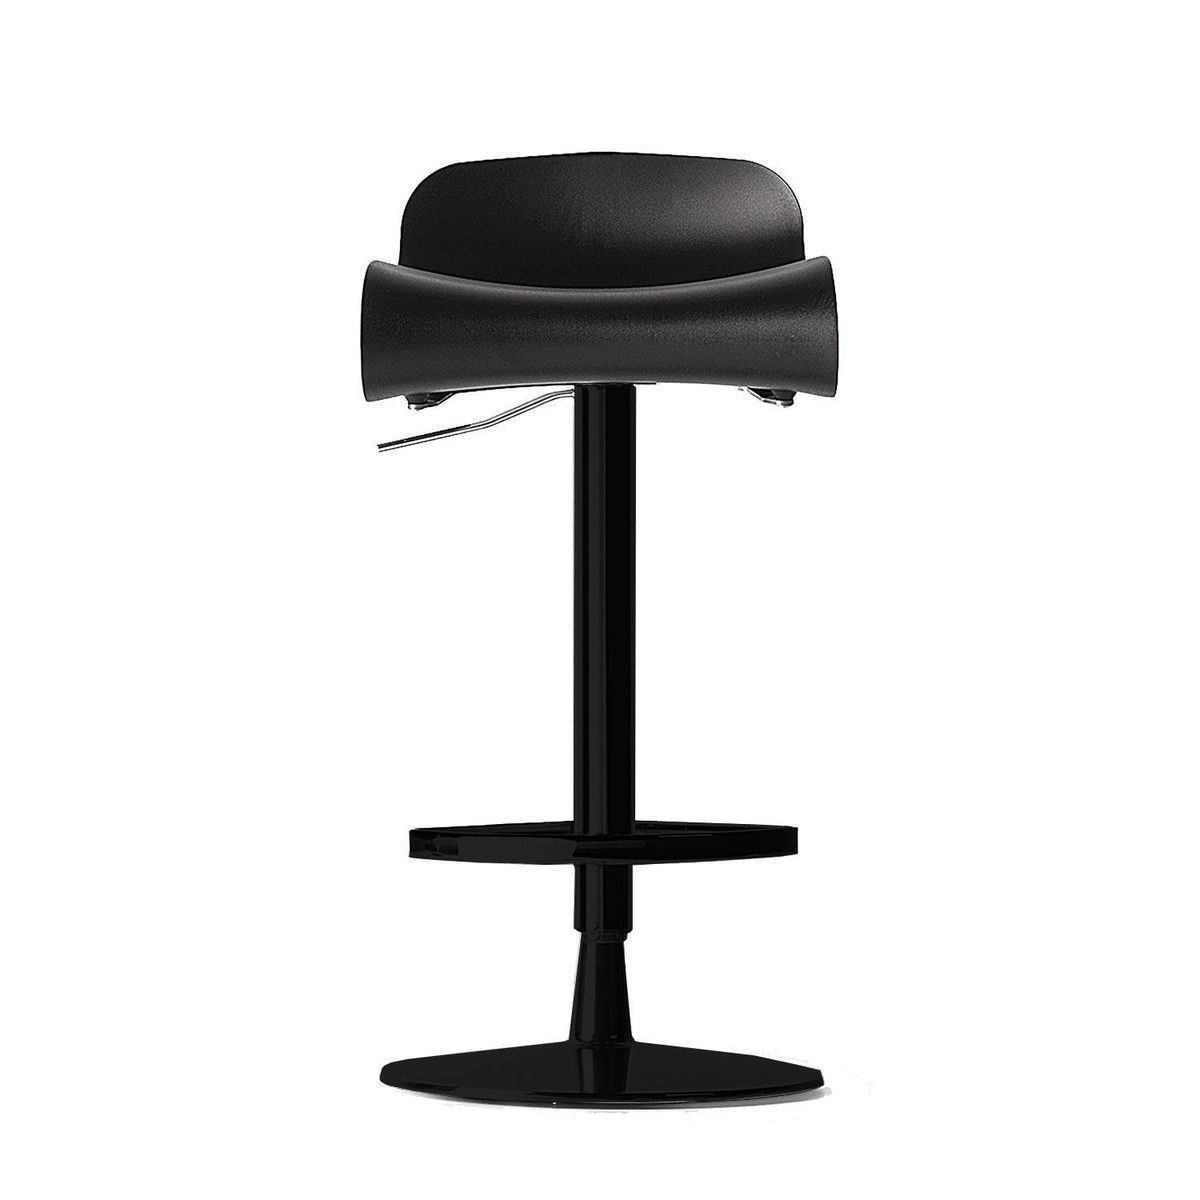 bcn tabouret tabouret de bar r glable kristalia. Black Bedroom Furniture Sets. Home Design Ideas